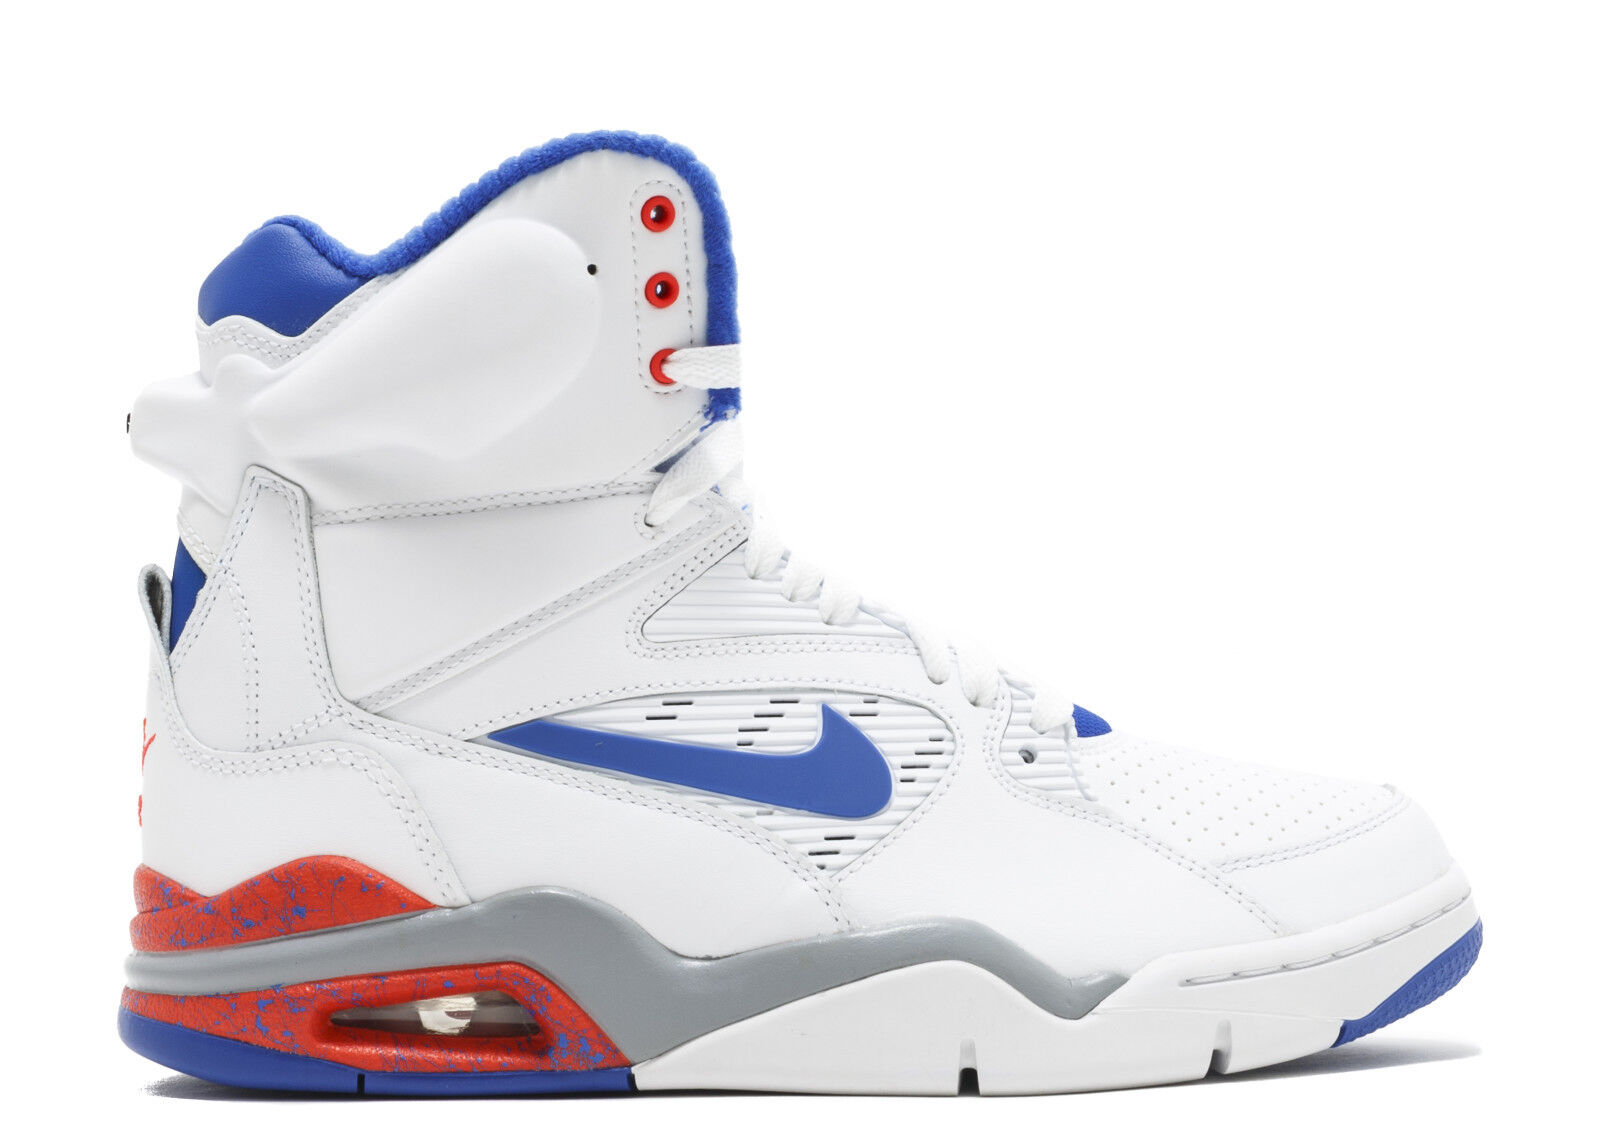 Size 7.5 / 8 / 13 Nike Men Air Command Force Shoes 684715 101 White Blue Red